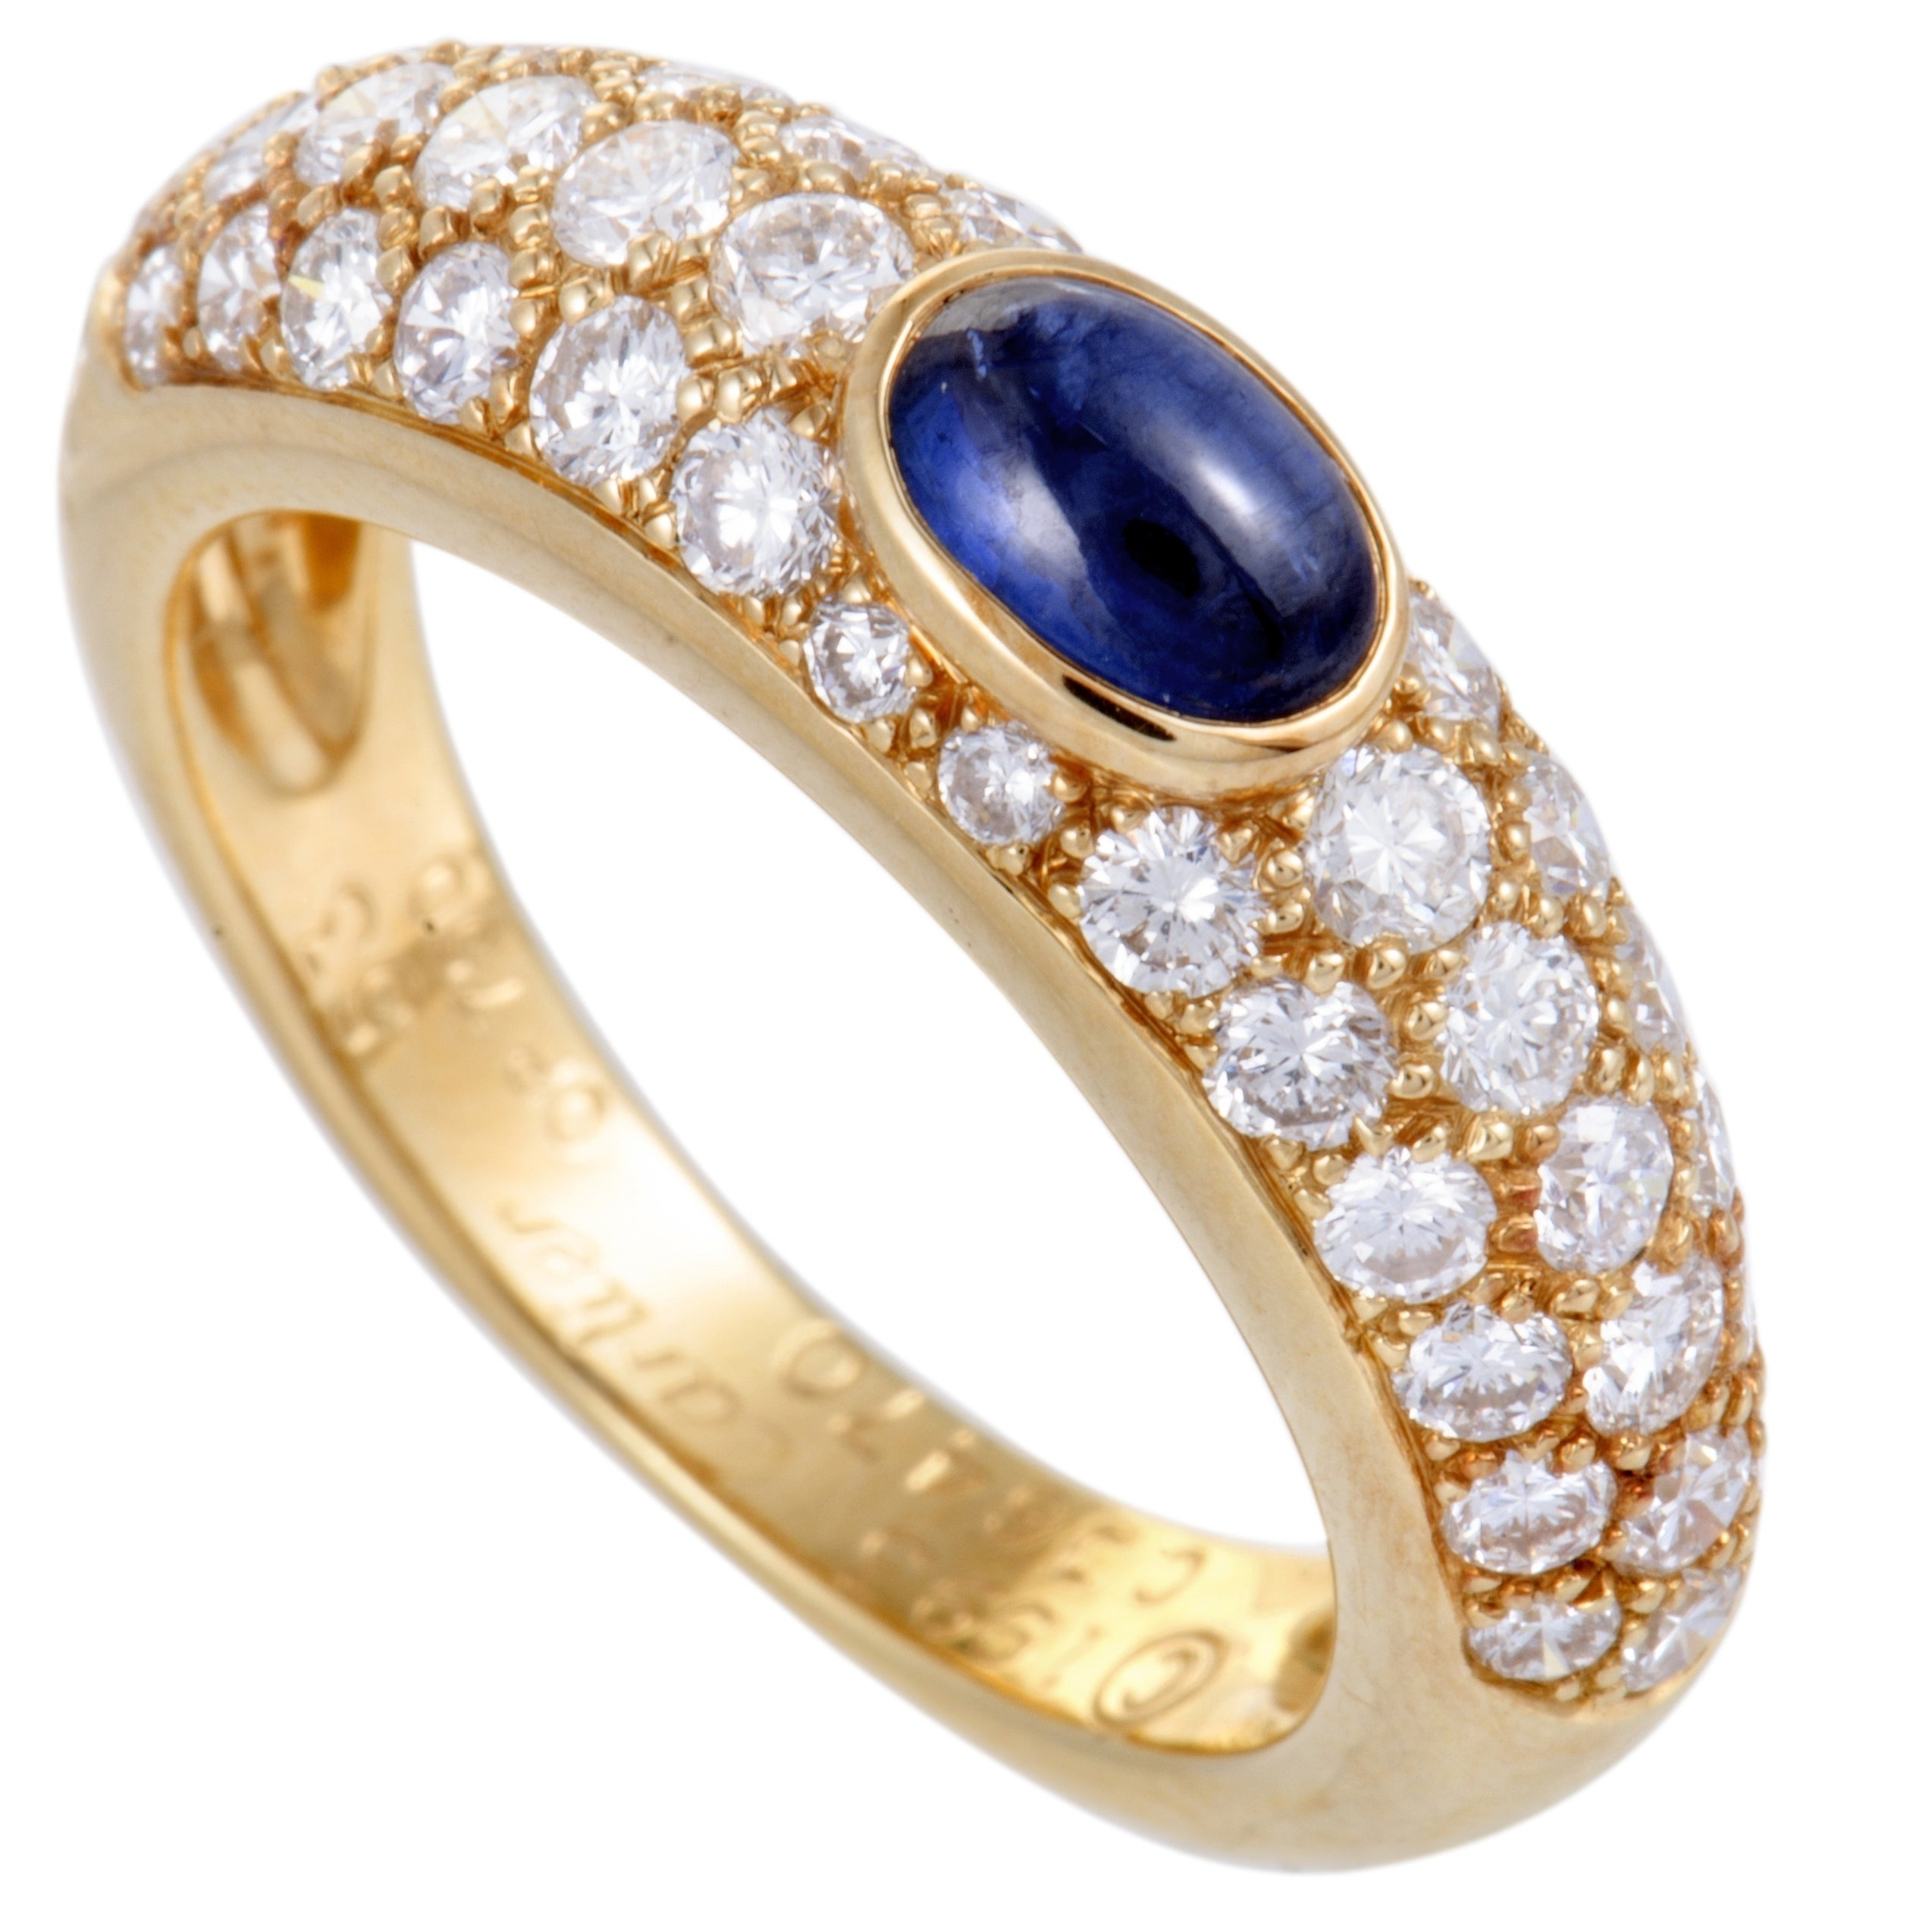 s bejeweled index cartier legacy allure sapphire the opulent of panther panthere cnn style article